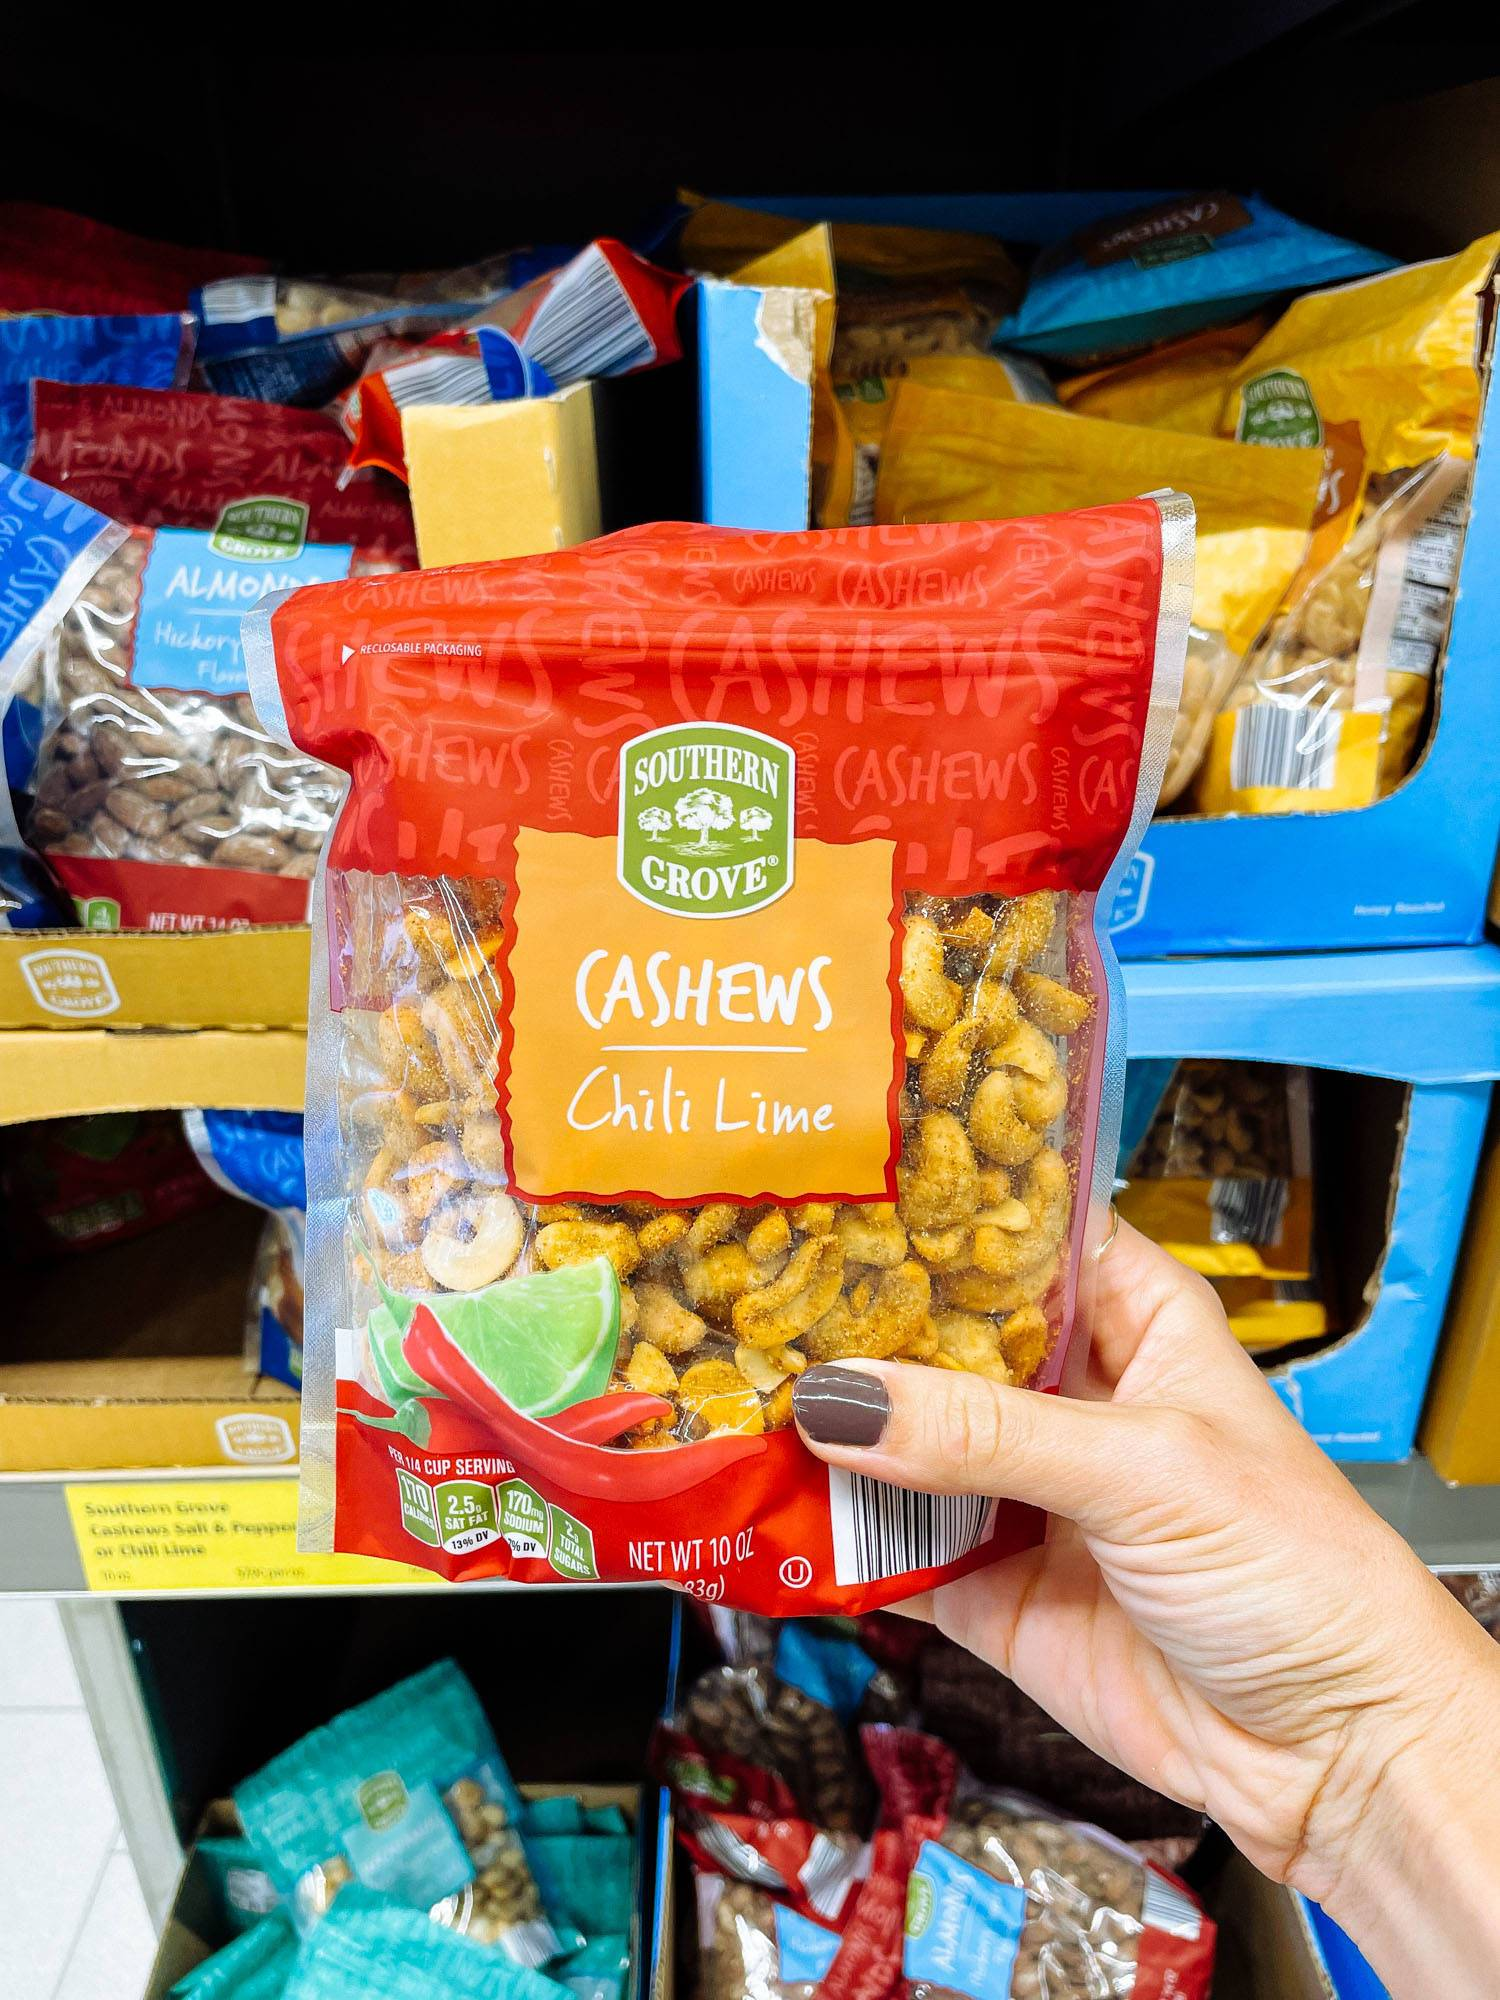 White hand holding chili lime cashews from ALDI.